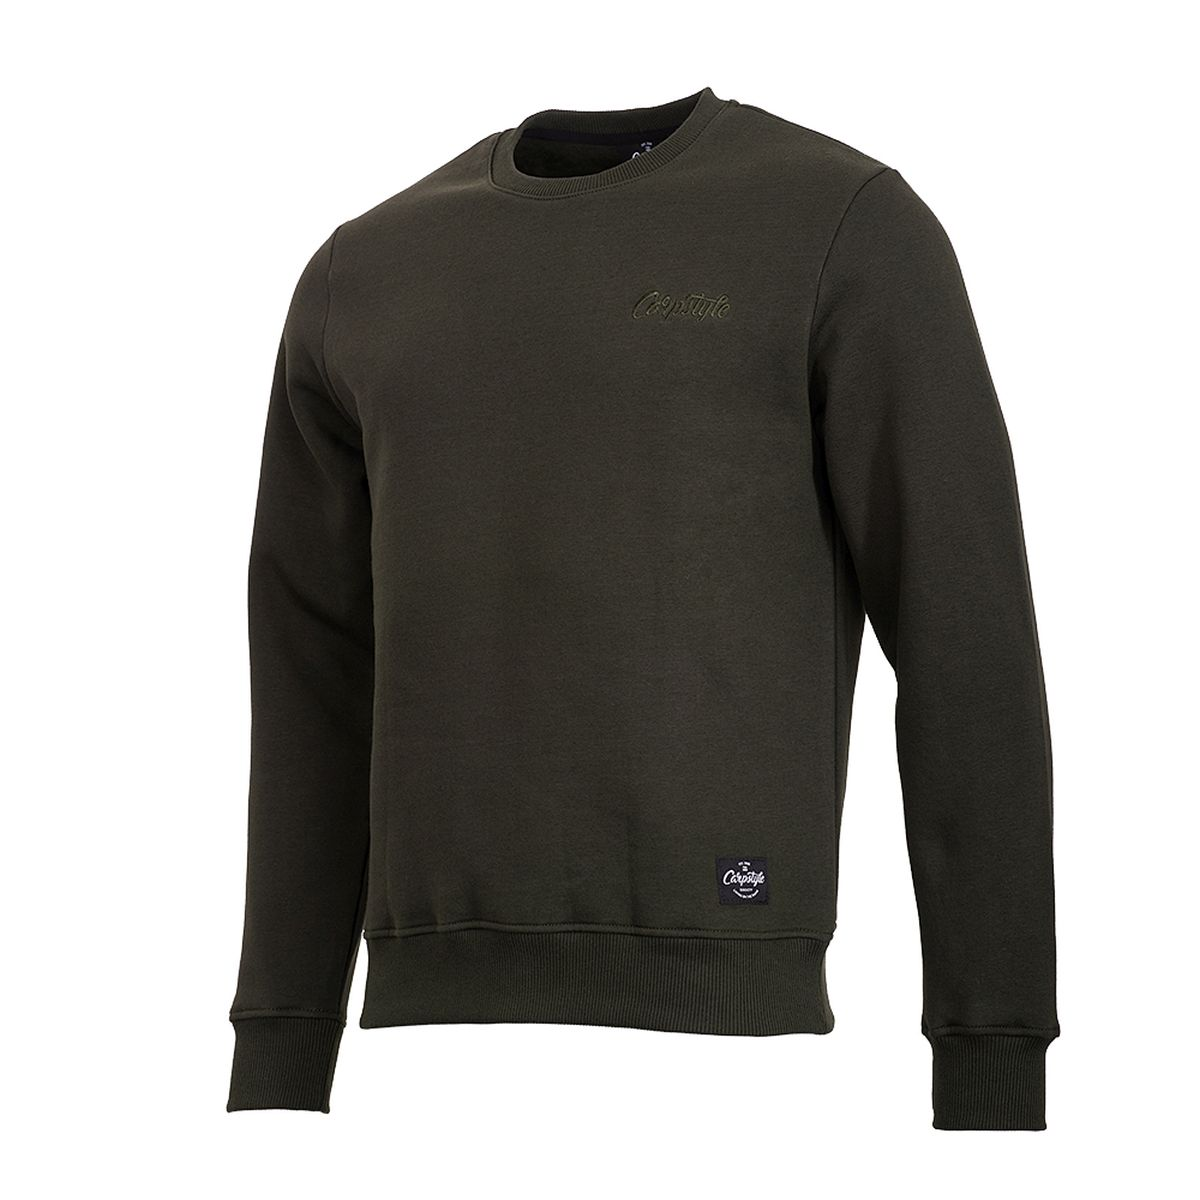 CARPSTYLE BANK SWEATSHIRT - M